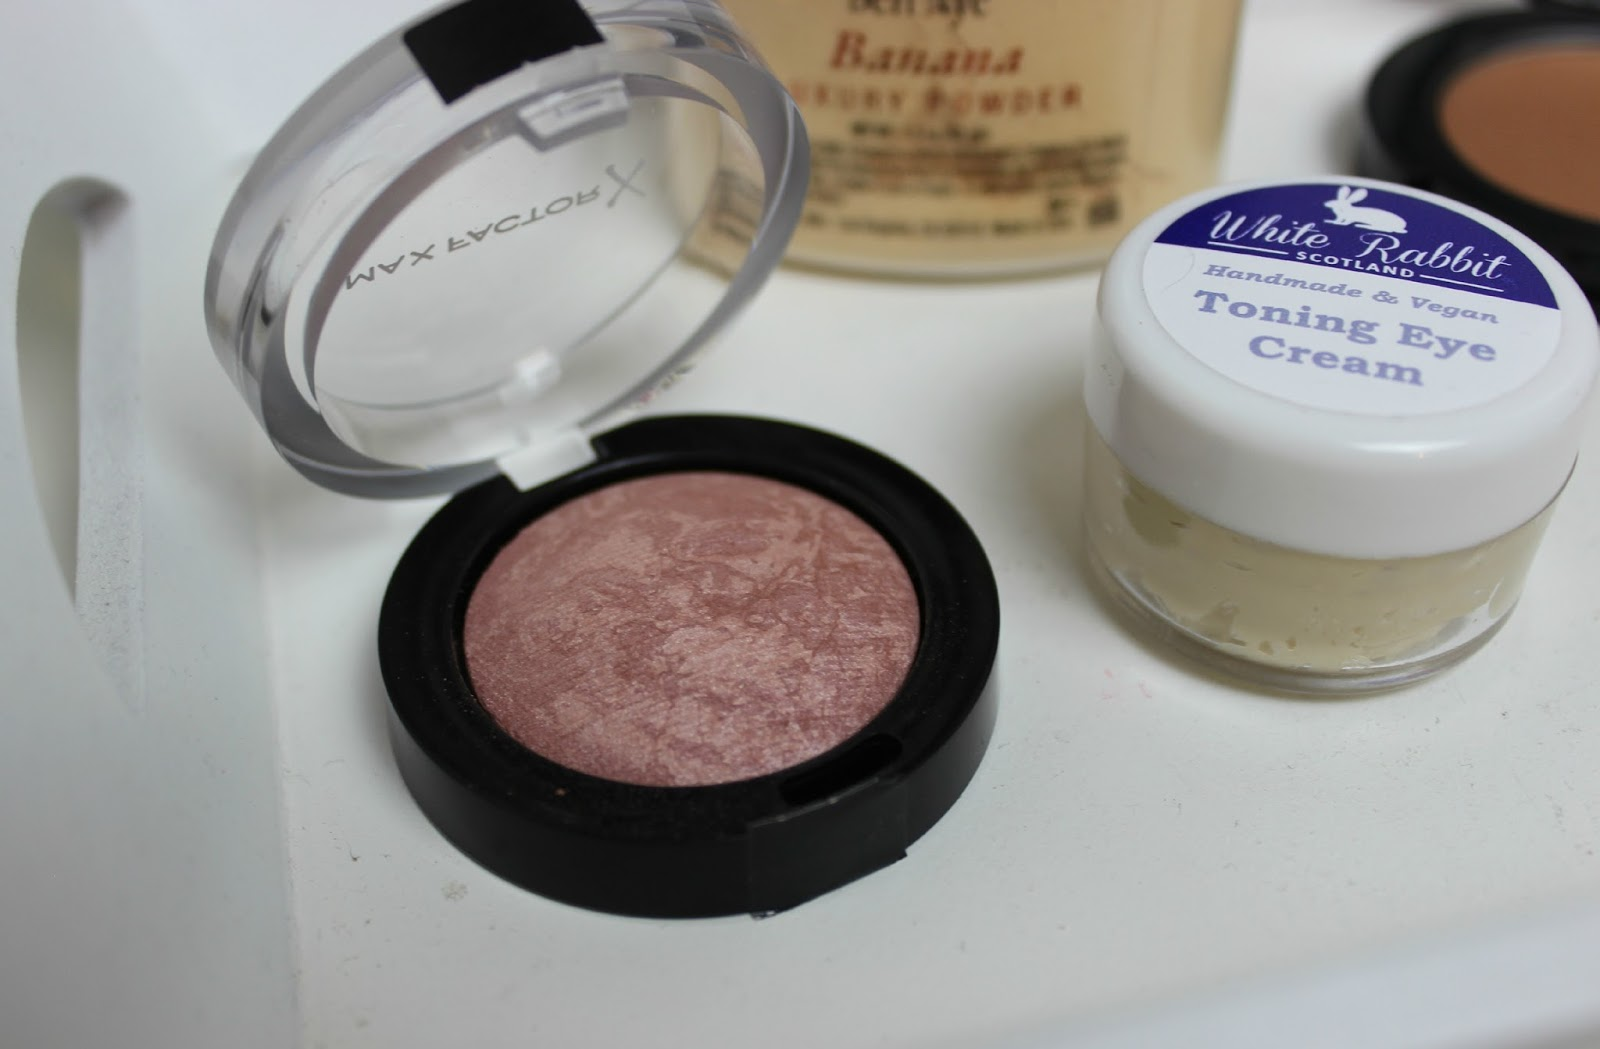 A picture of Max Factor Creme Puff Blush and White Rabbit Skincare Toning Eye Cream